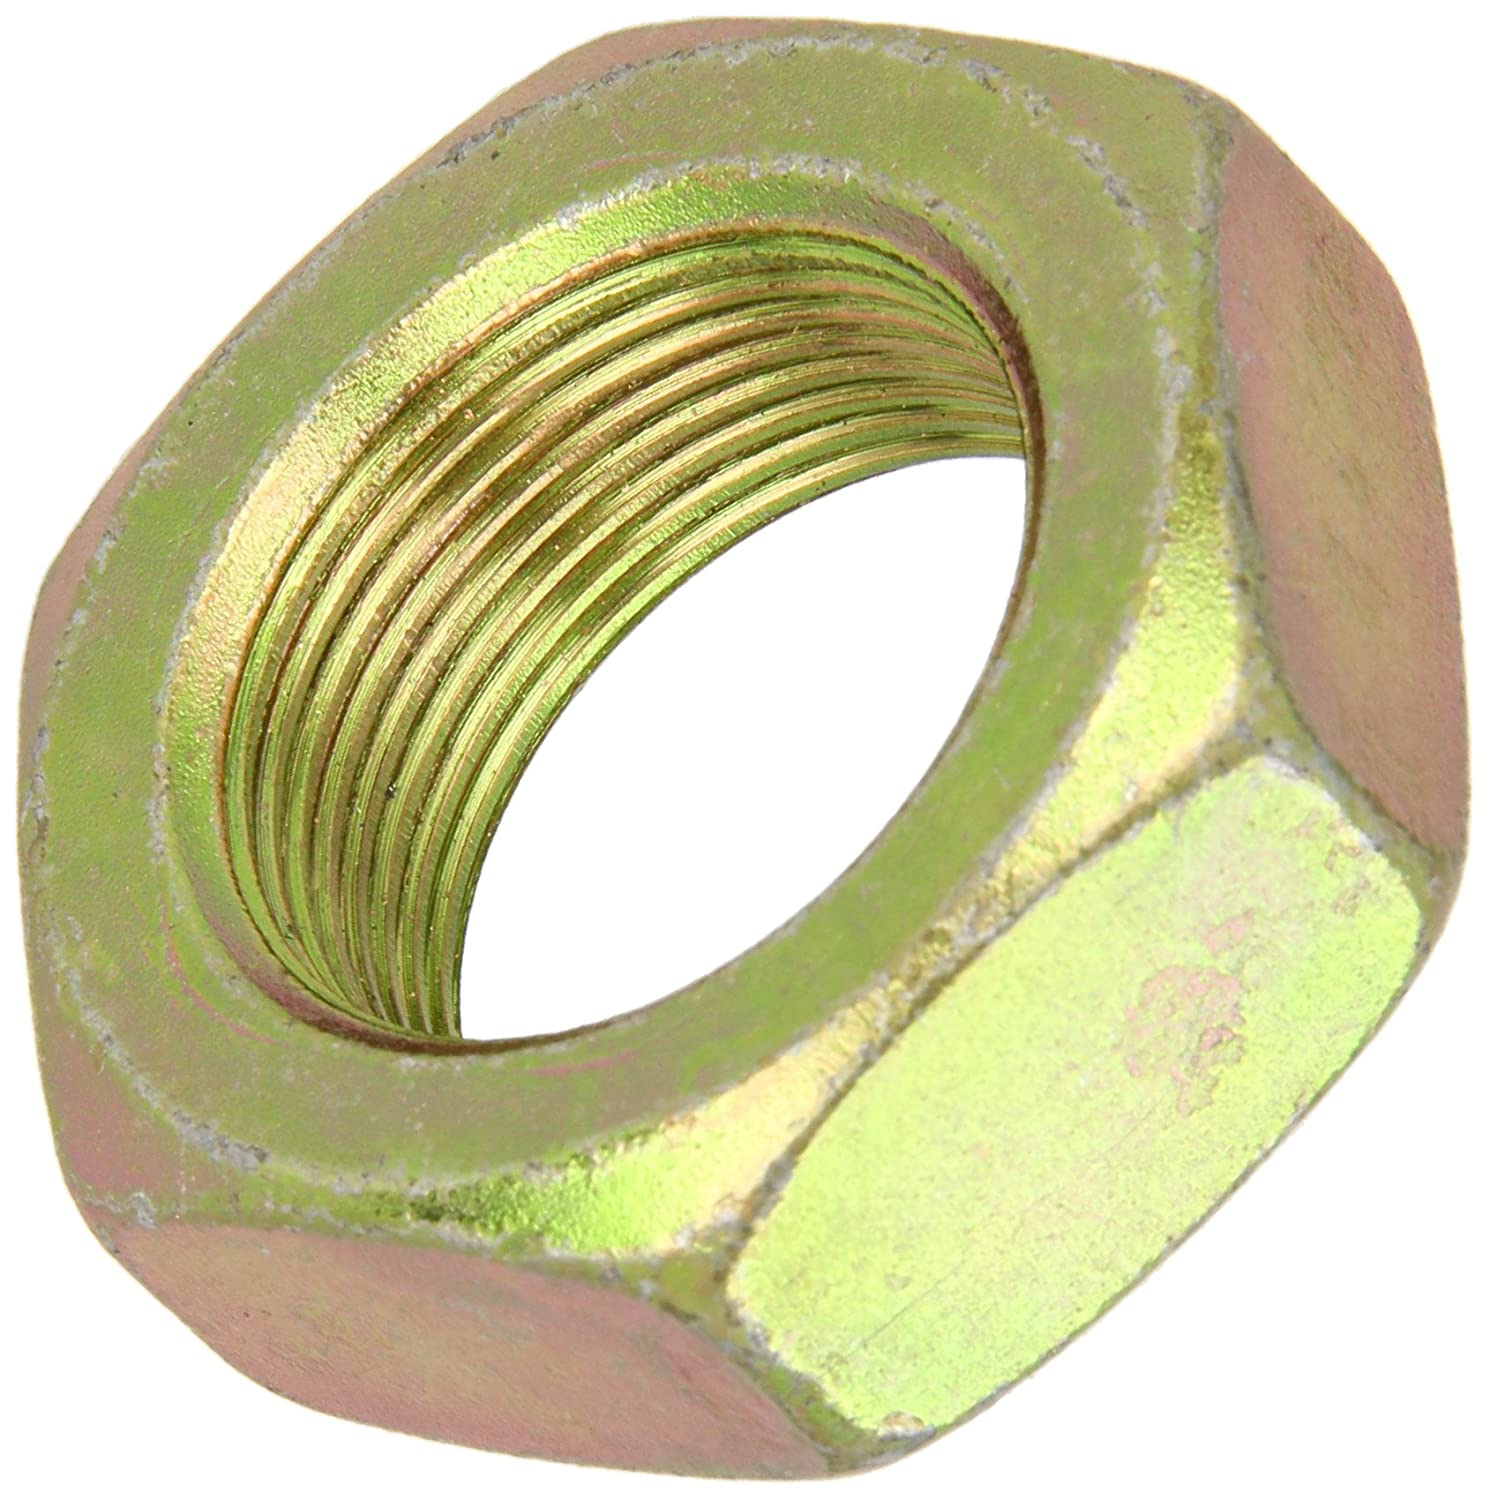 55//64 Thick Steel Hex Nut Pack of 10 1-14 Thread Size 1-1//2 Width Across Flats ASME B18.2.2 Zinc Yellow-Chromate Plated Grade 8